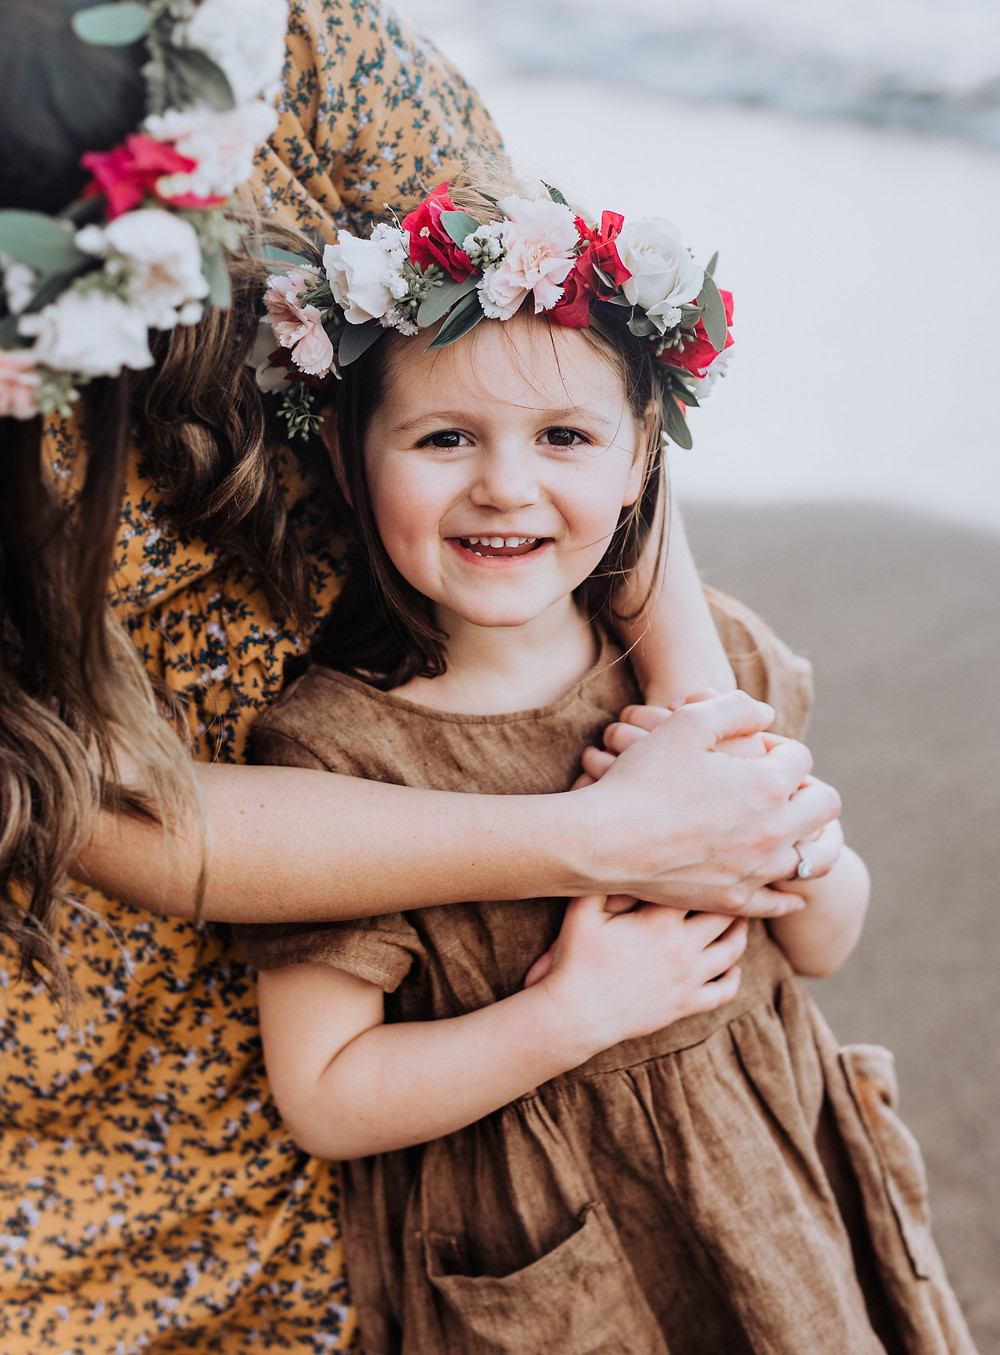 A little girl is looking at the camera smiling with a flower crown in her hair.